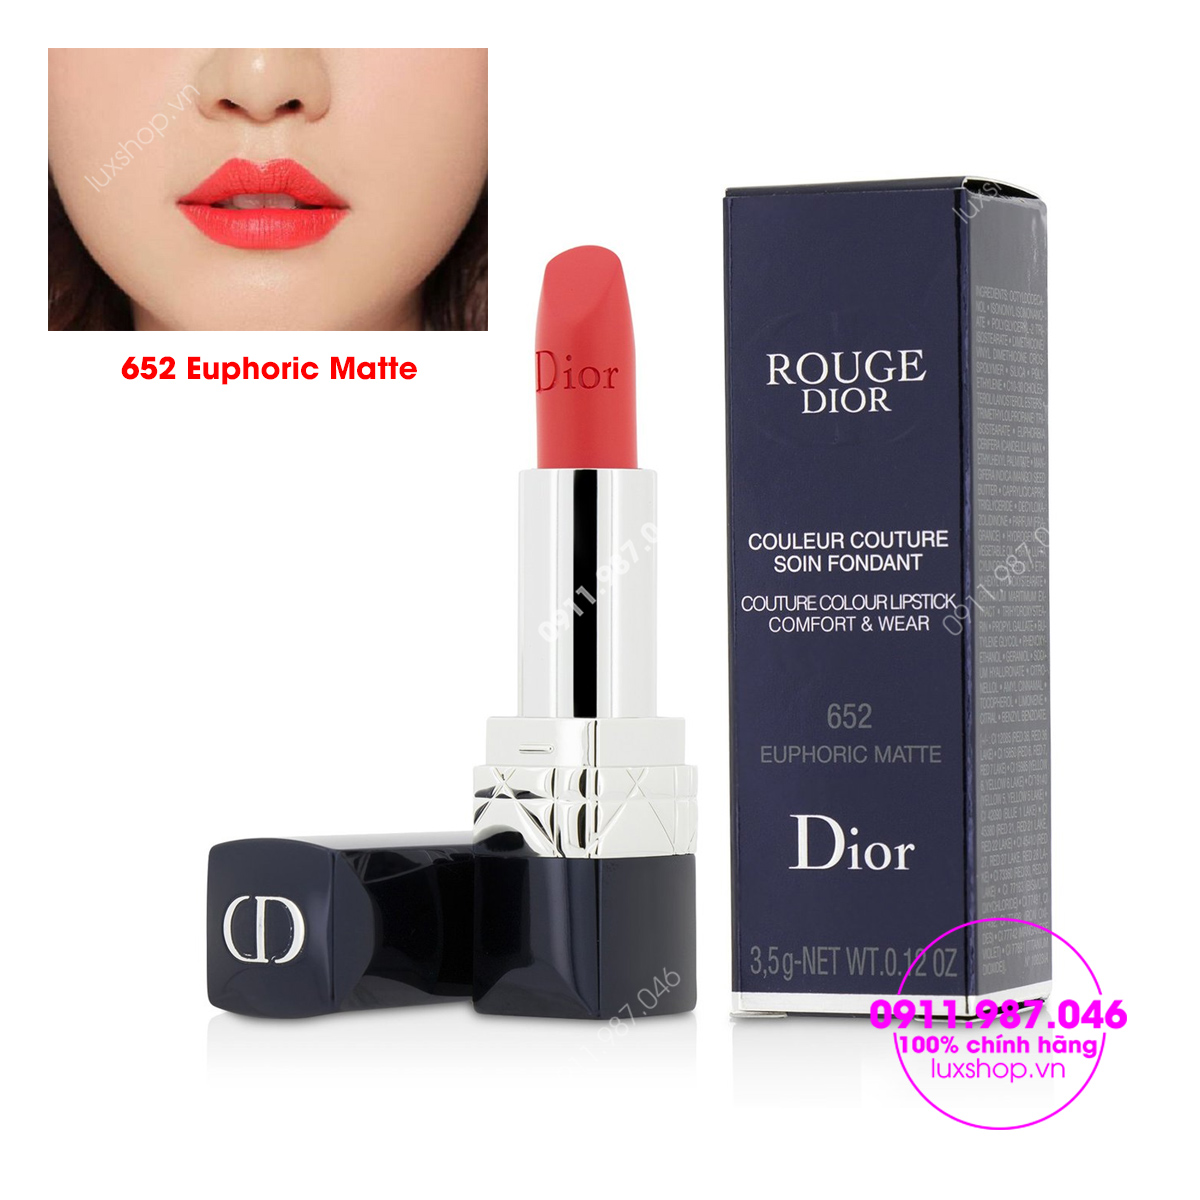 son-moi-dior-rouge-652-euphoric-matte-35g-mau-do-cam-anh-hong-dao-chinh-hang-phap-l93546